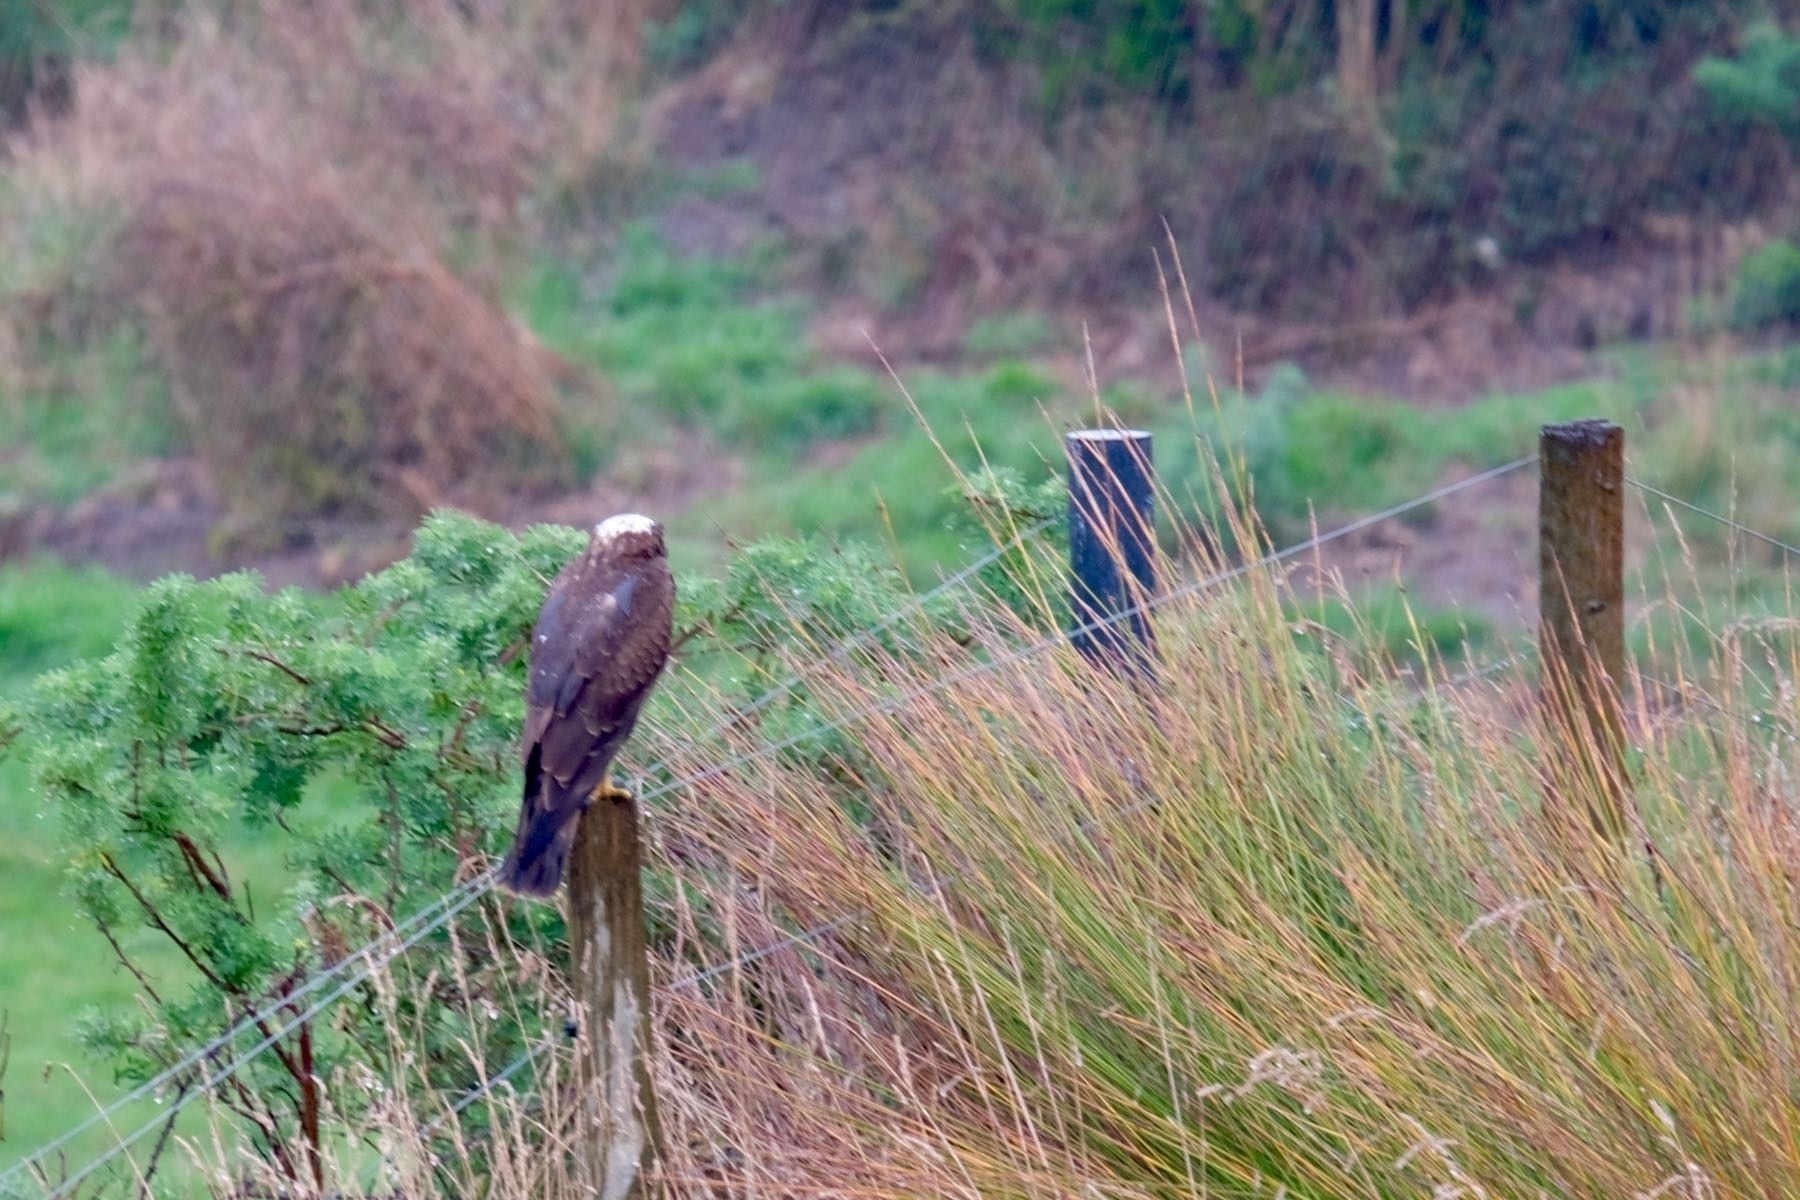 Hawk facing away, on a fence post.